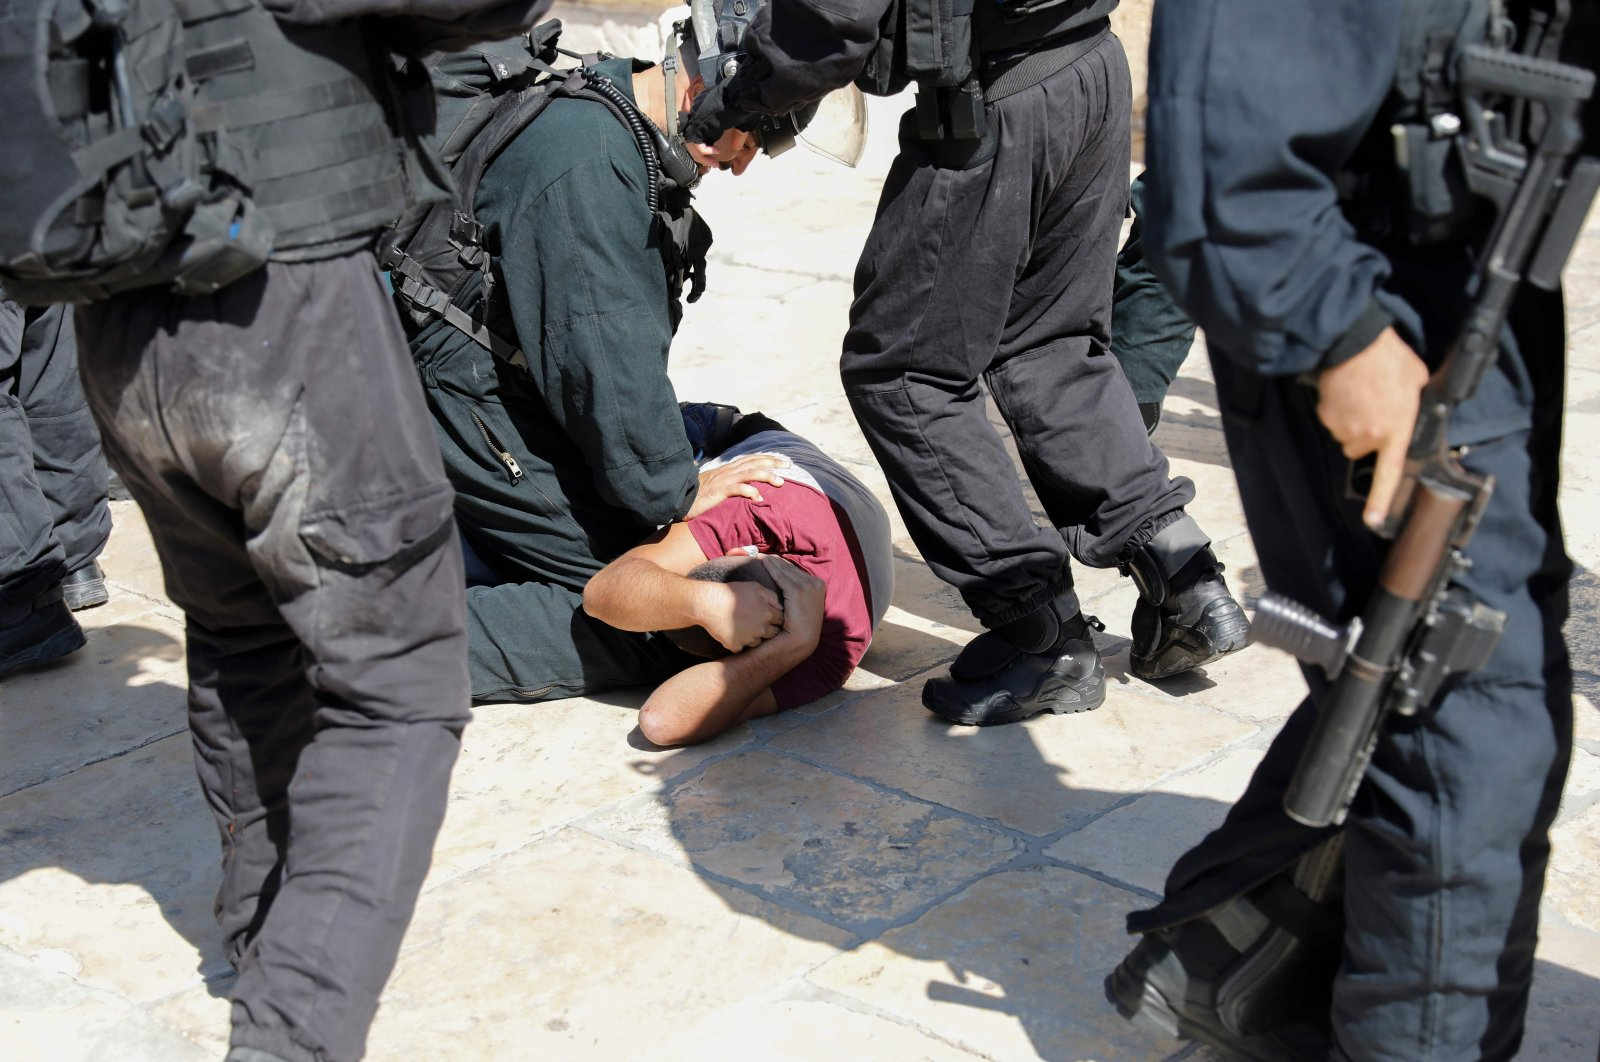 Israeli security forces detain a Palestinian at the Al-Aqsa Mosque compound in the Old City of Jerusalem, Israel, Aug. 11, 2019. (AFP Photo)